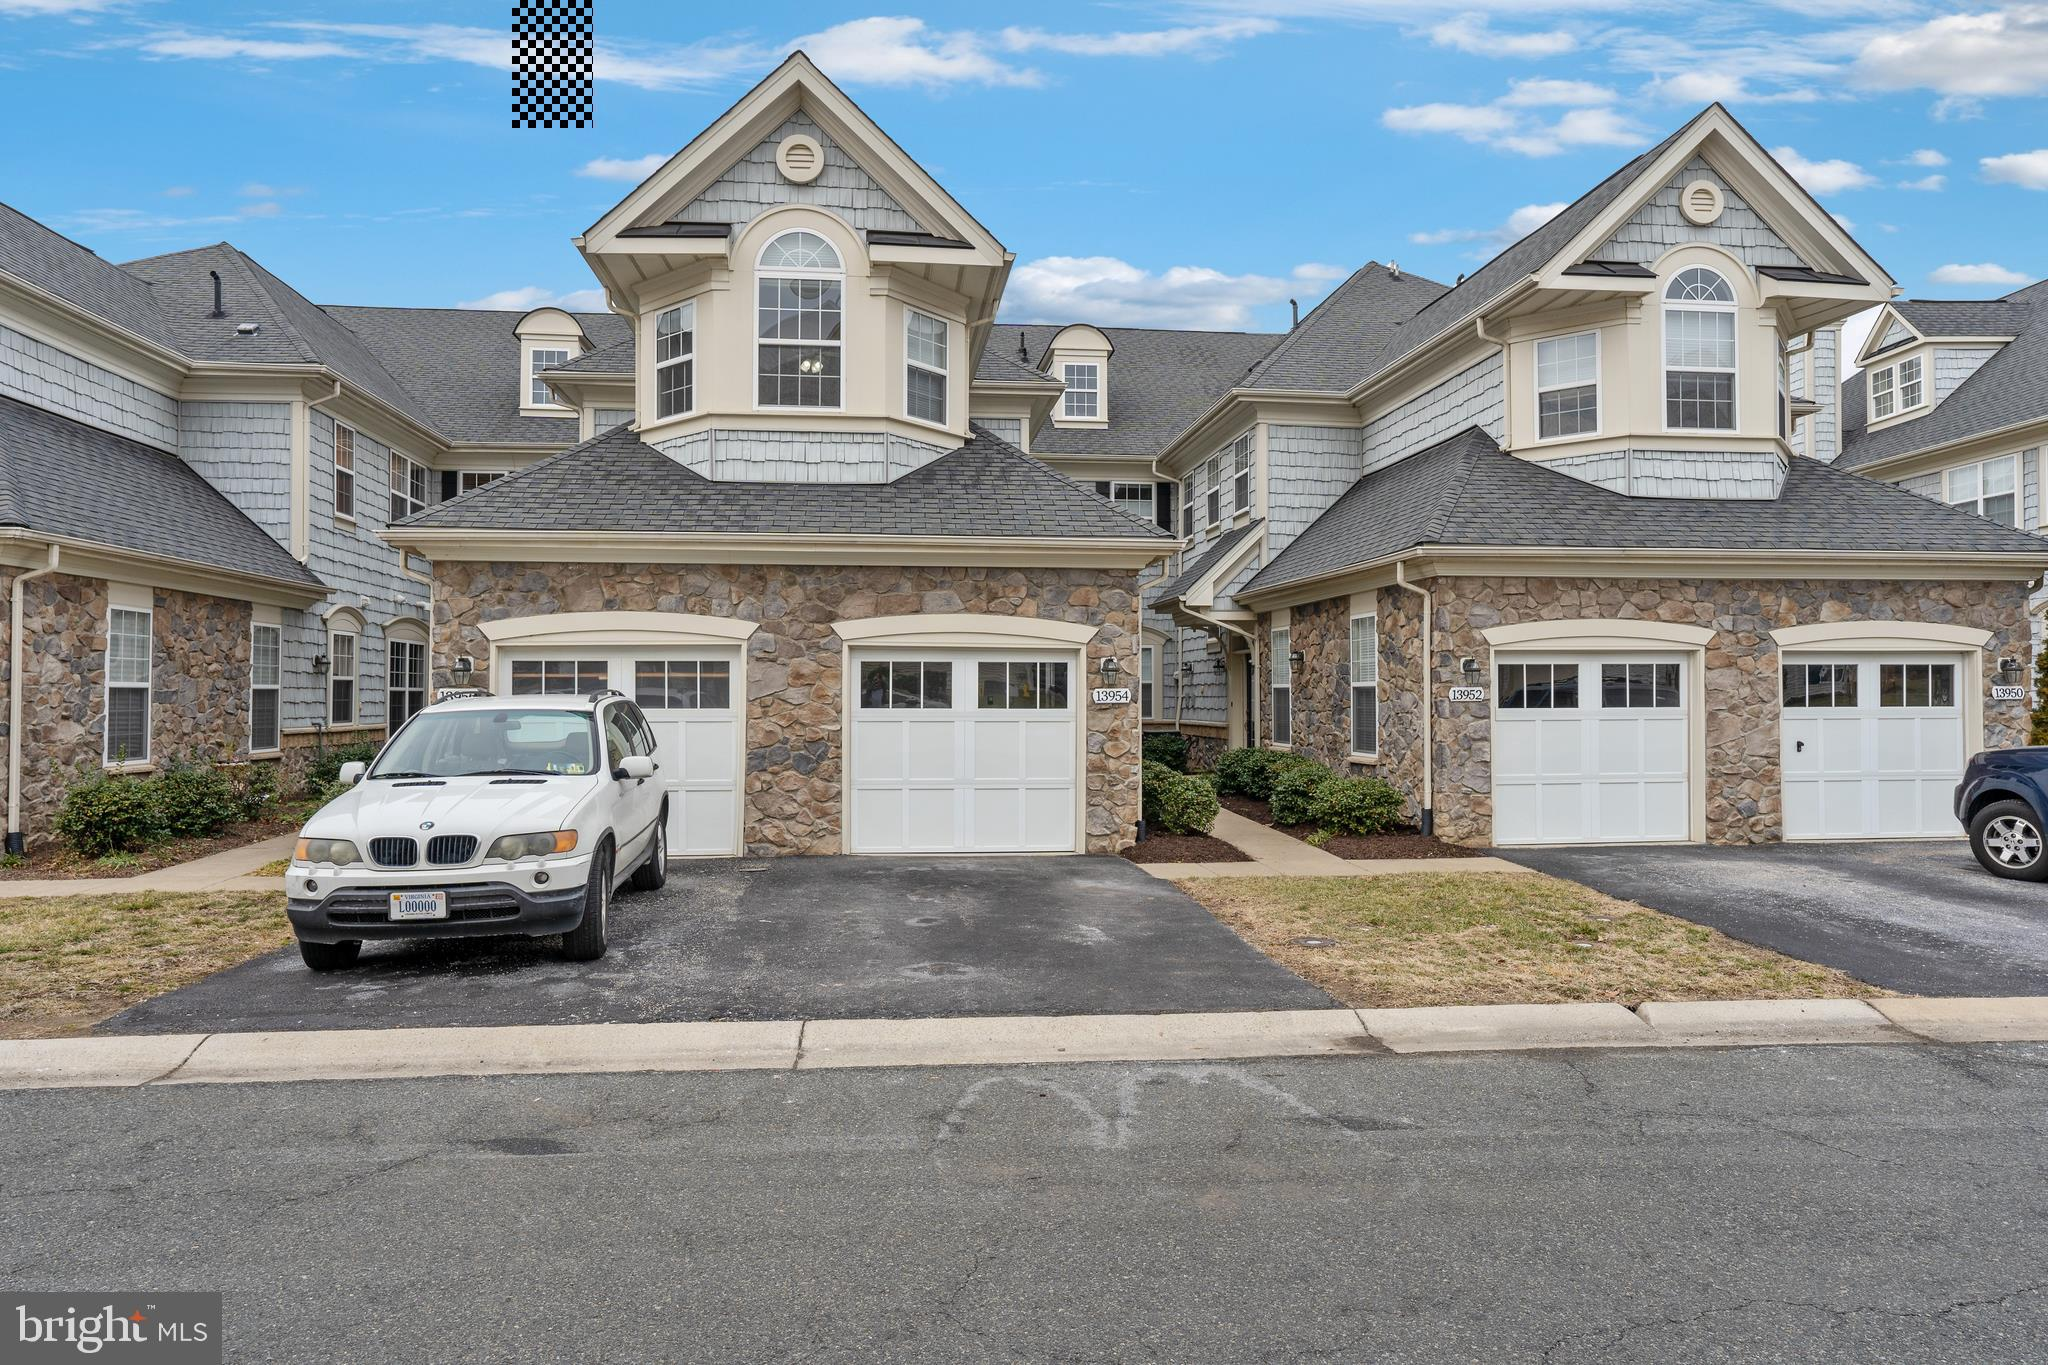 BELMONT BAY GOLF VILLA! ONE OF THE LARGER UNITS, CLOSE TO 2300 SQ.FT. ON 3 LEVELS ! 1 C AR GARAGE,GORGEOUS KITC HEN, 3 BEDROOMS, 3 FBA's, AMENITY RIC H C OMMUNITY, NEAR VRE, NATURALPARKS, TENNIS, SWIMMING POOL, HIKING TRAILS, WATER VIEWS GALORE, CLOSE TO DC!